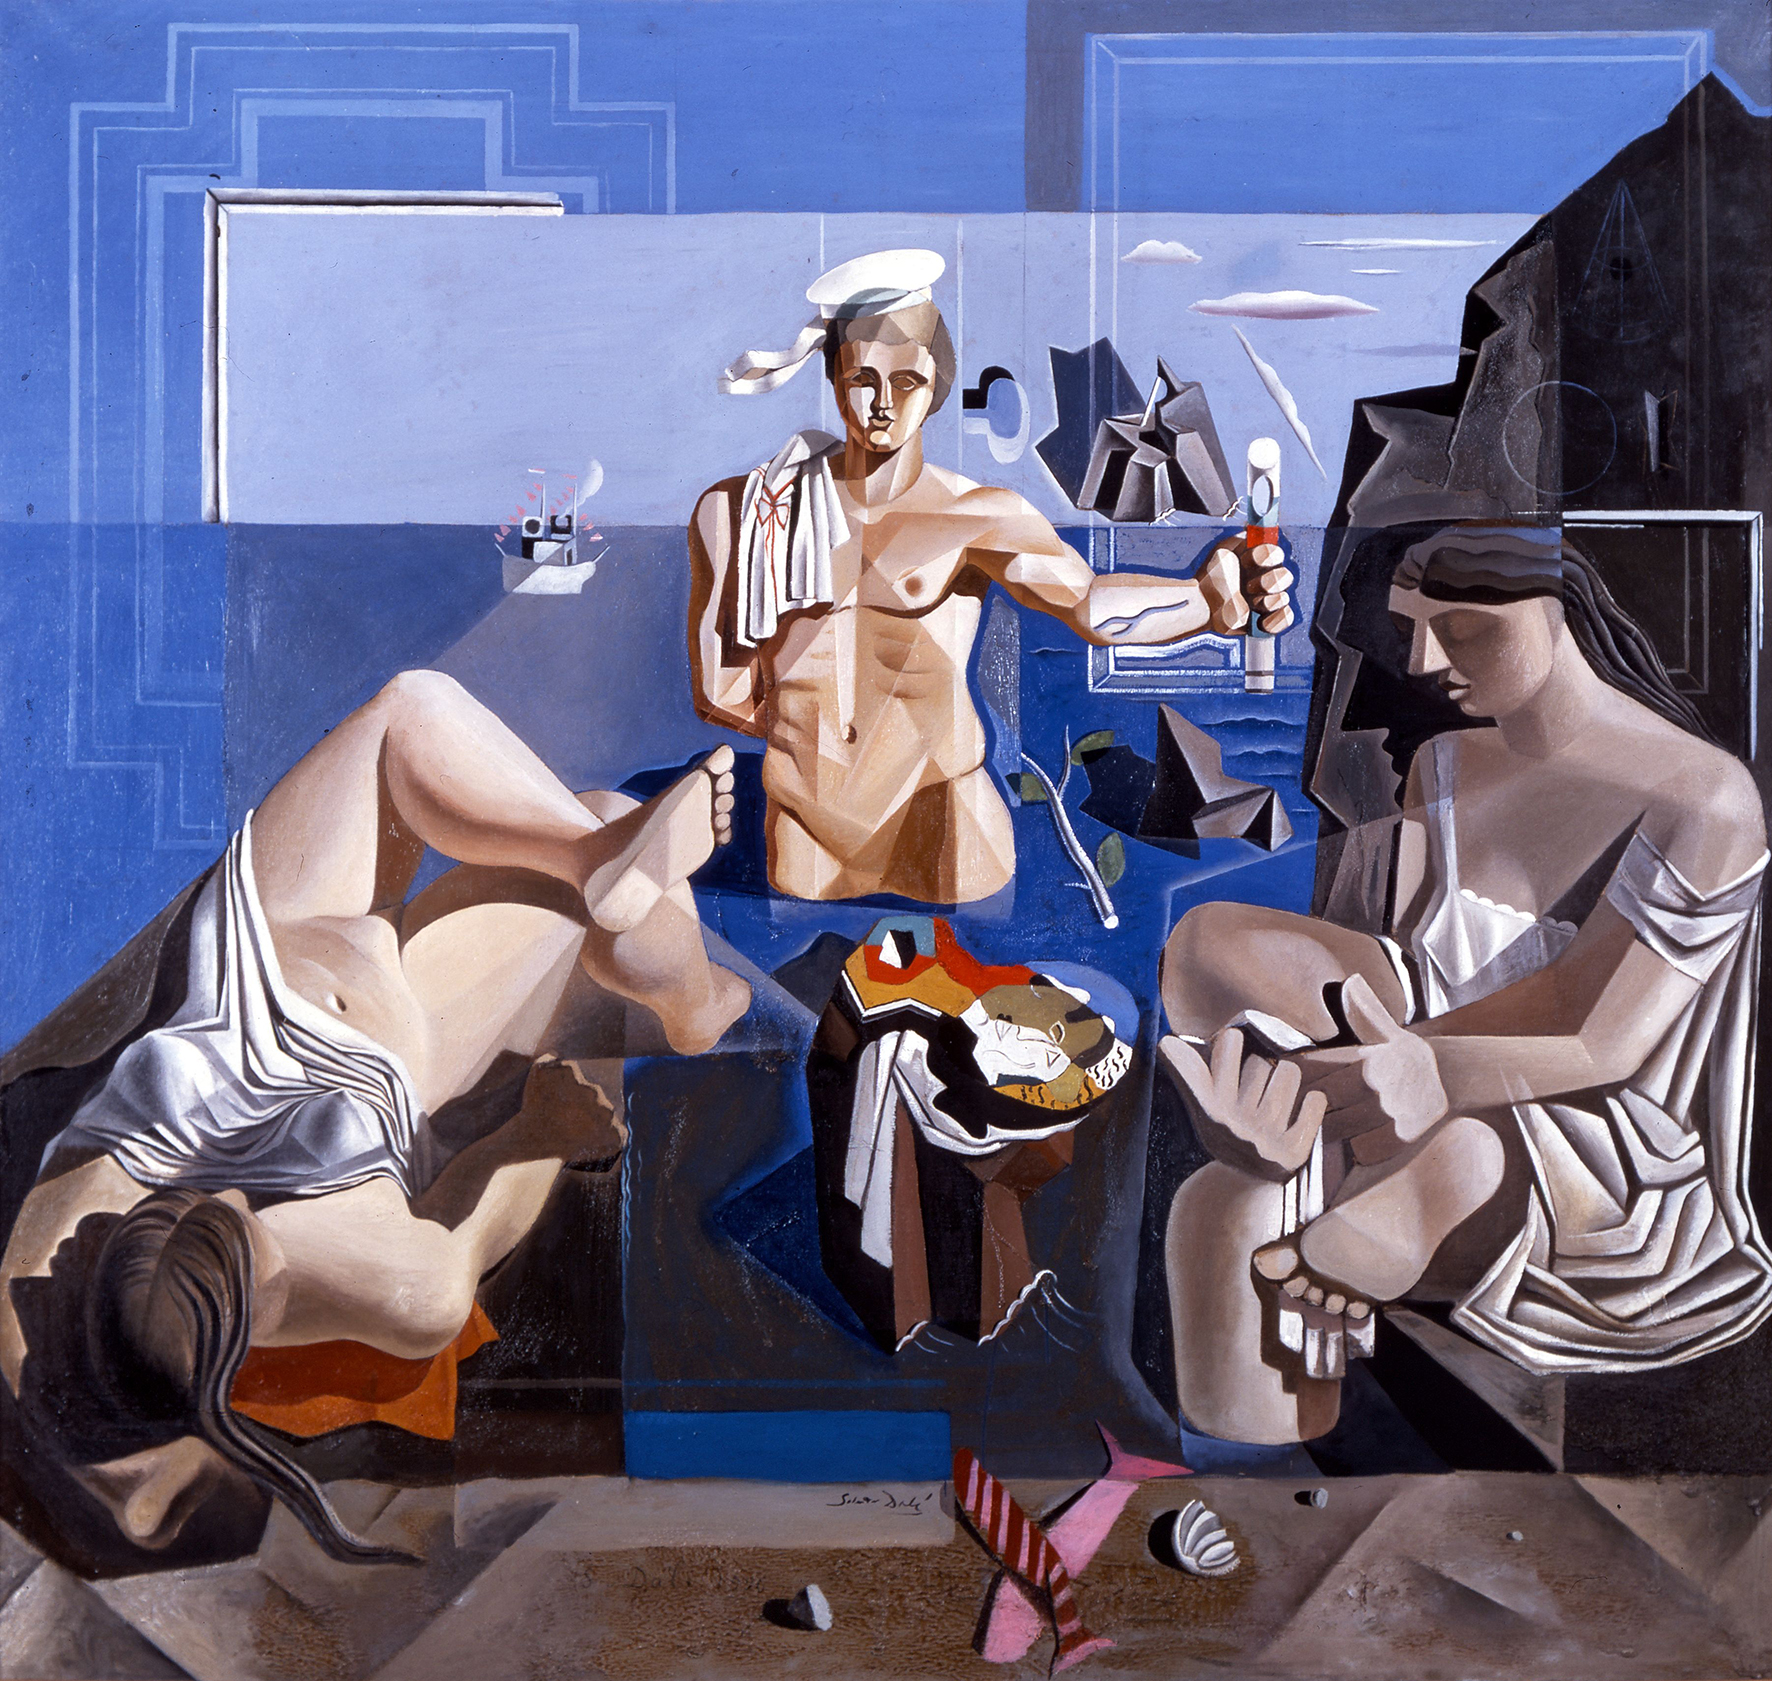 cubist potrayal of three persons in front of a blue background